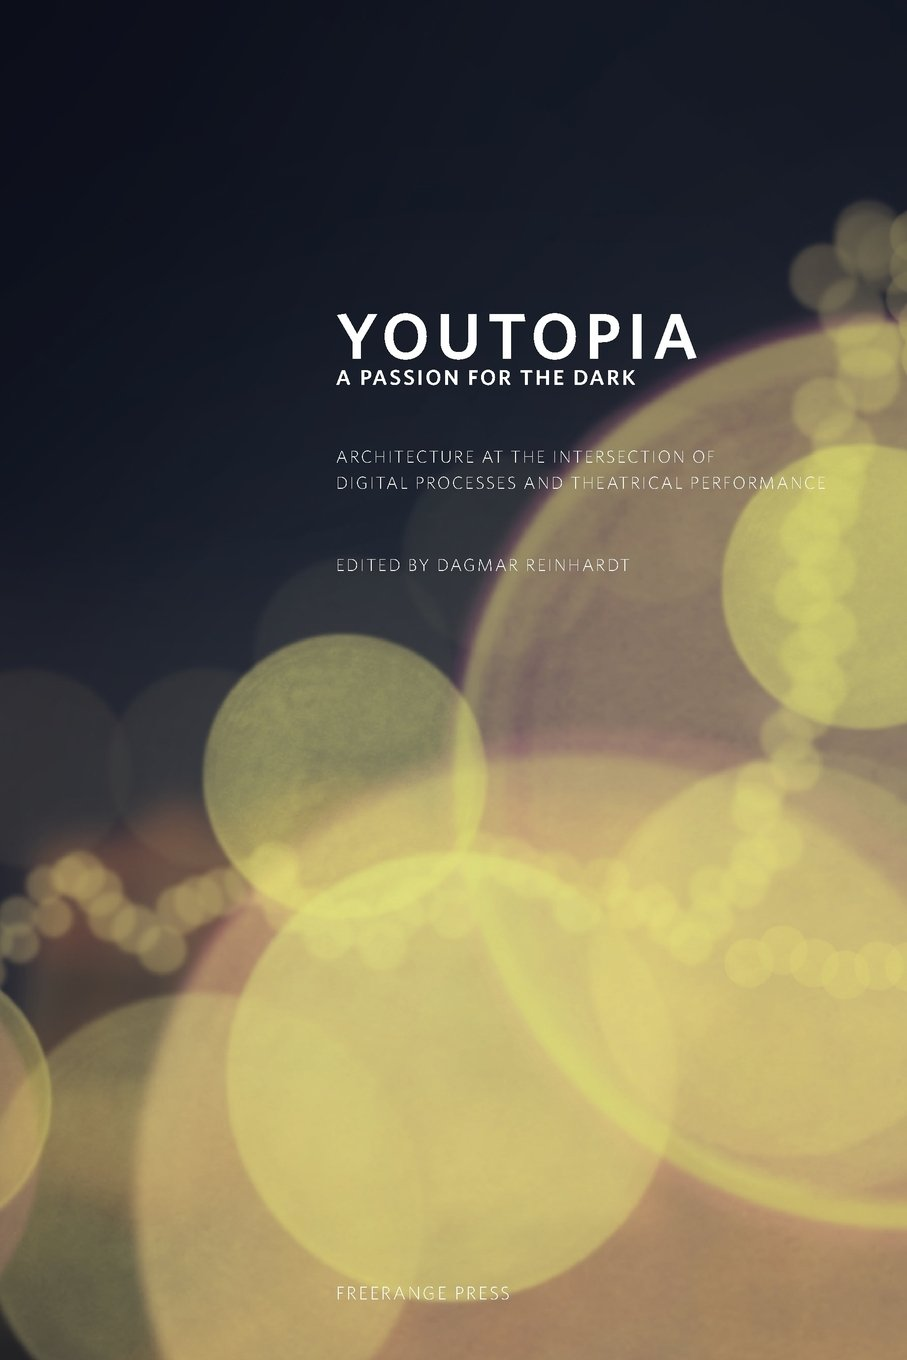 Youtopia: A Passion for the Dark. Architecture at the Intersection Between Digital Processes and Theatrical Performance. ebook